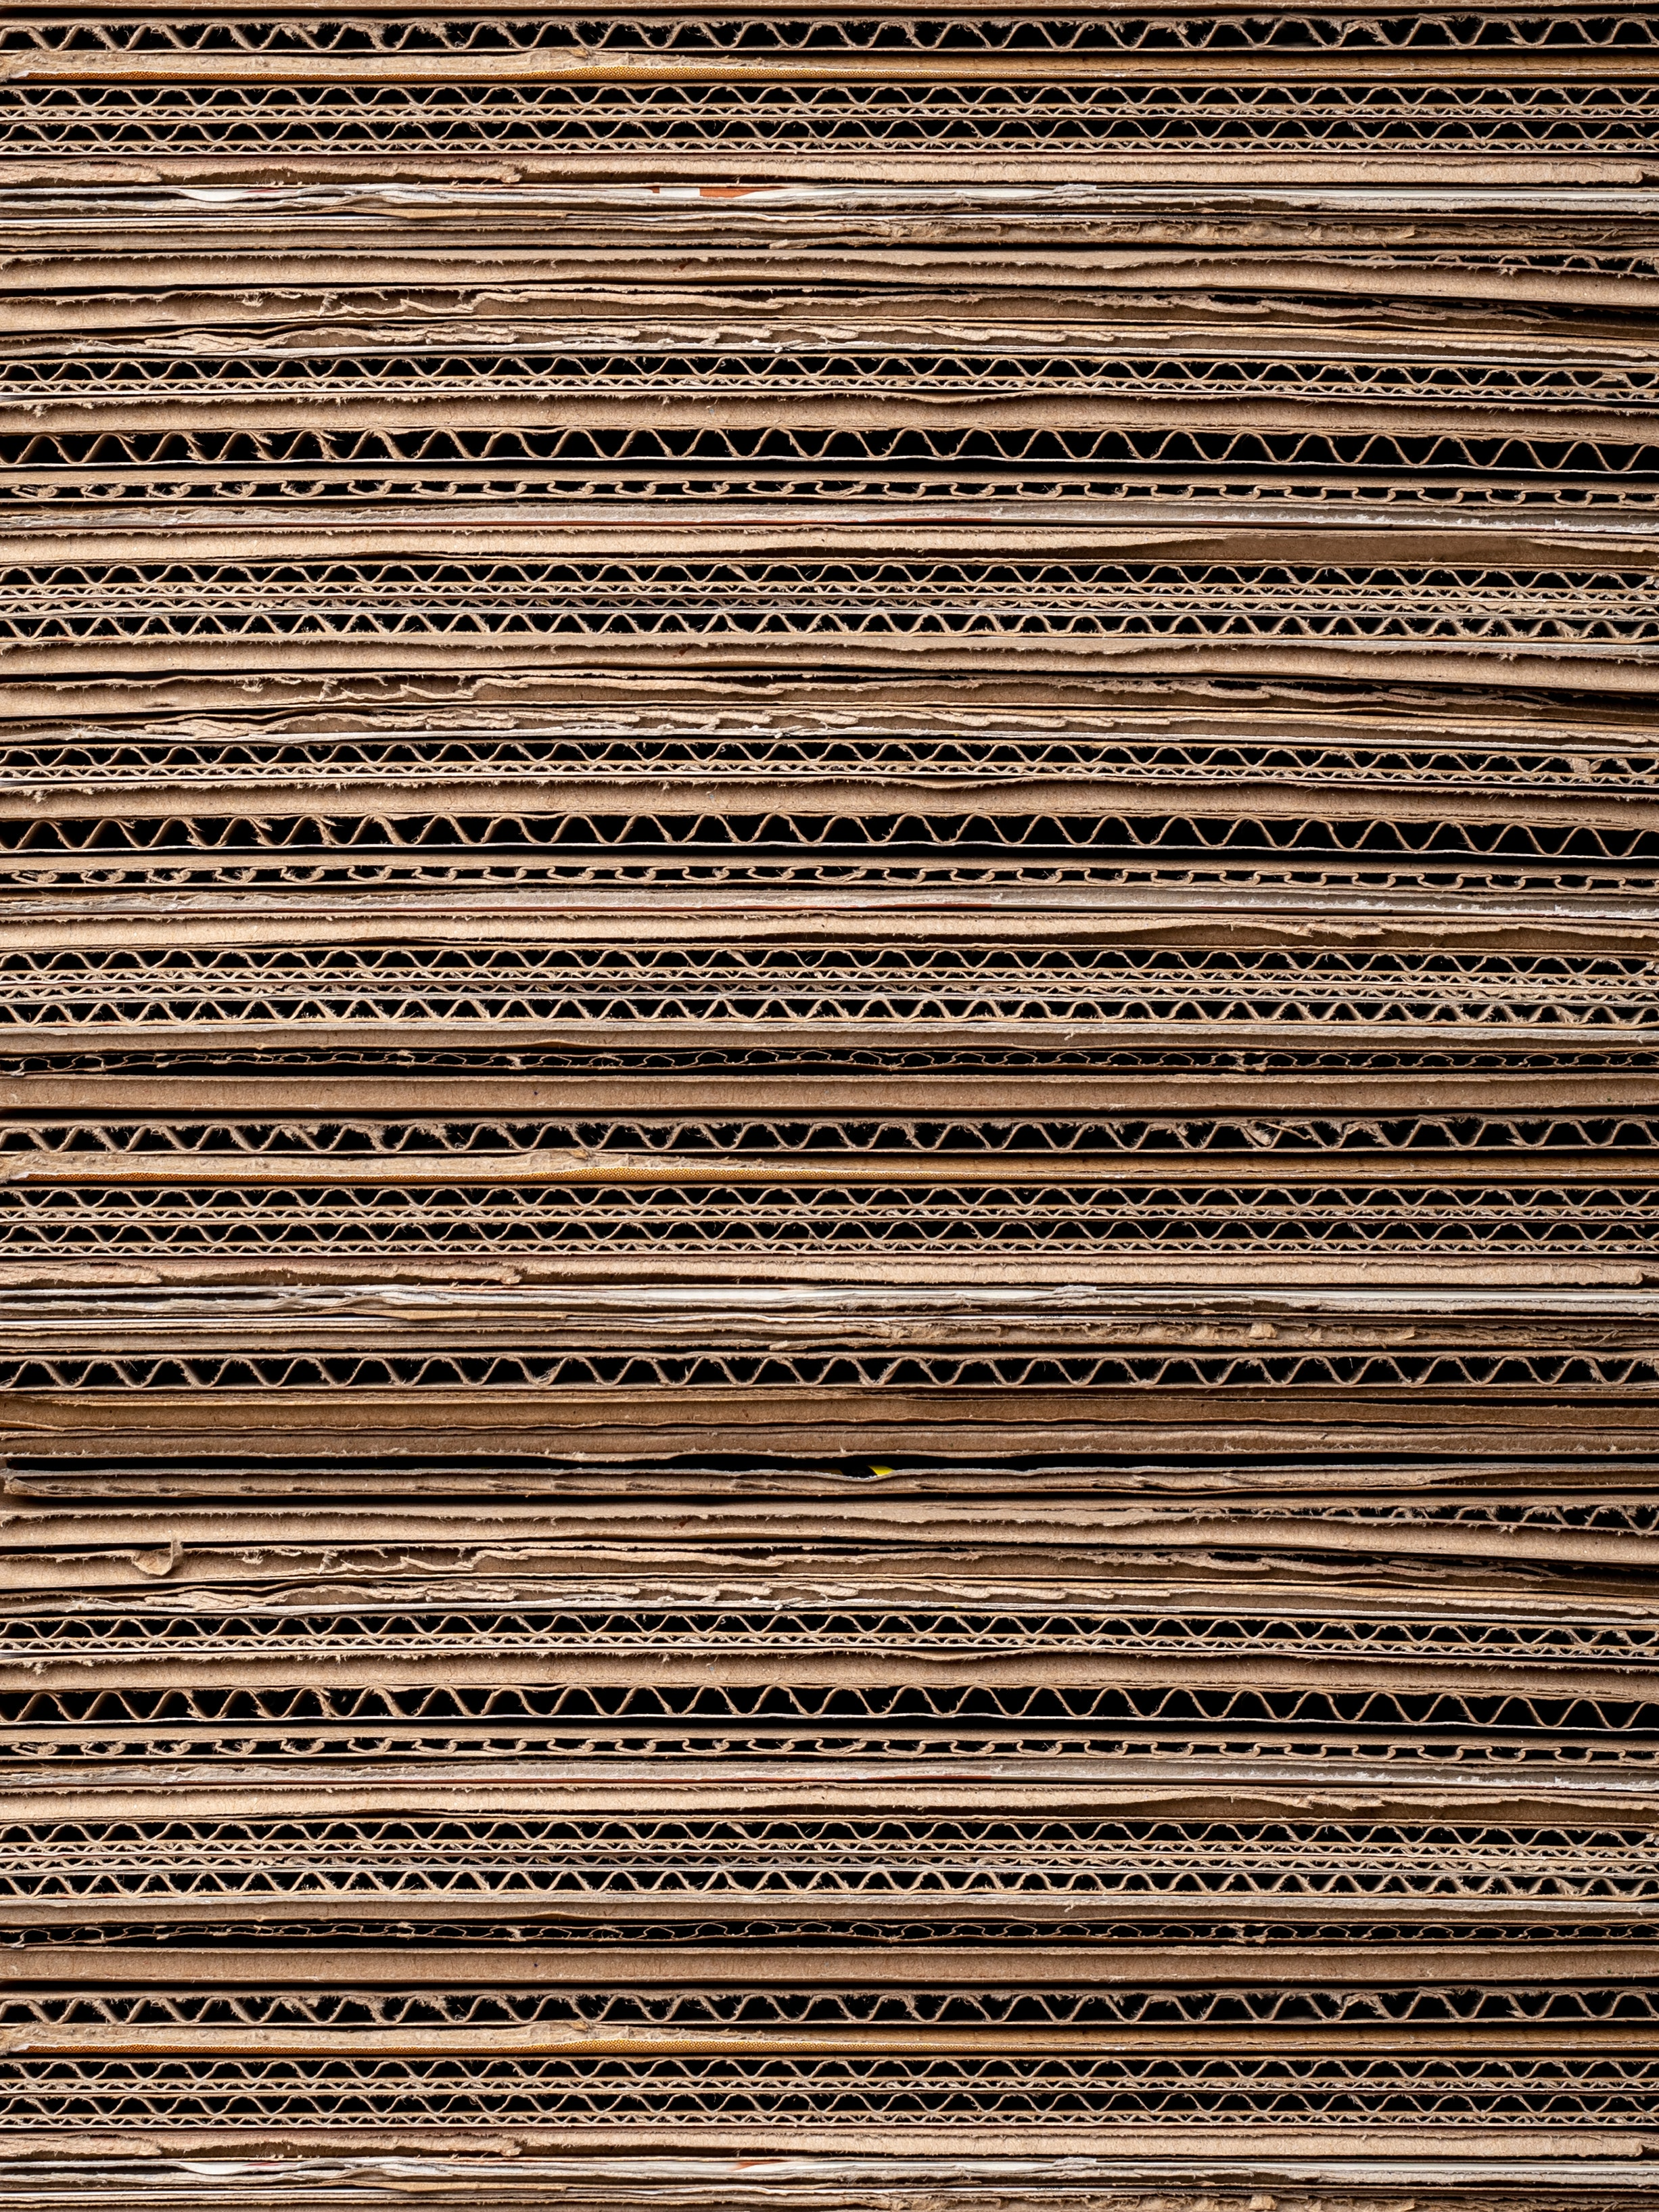 brown-cardboard-close-up-1555199 (1).jpg